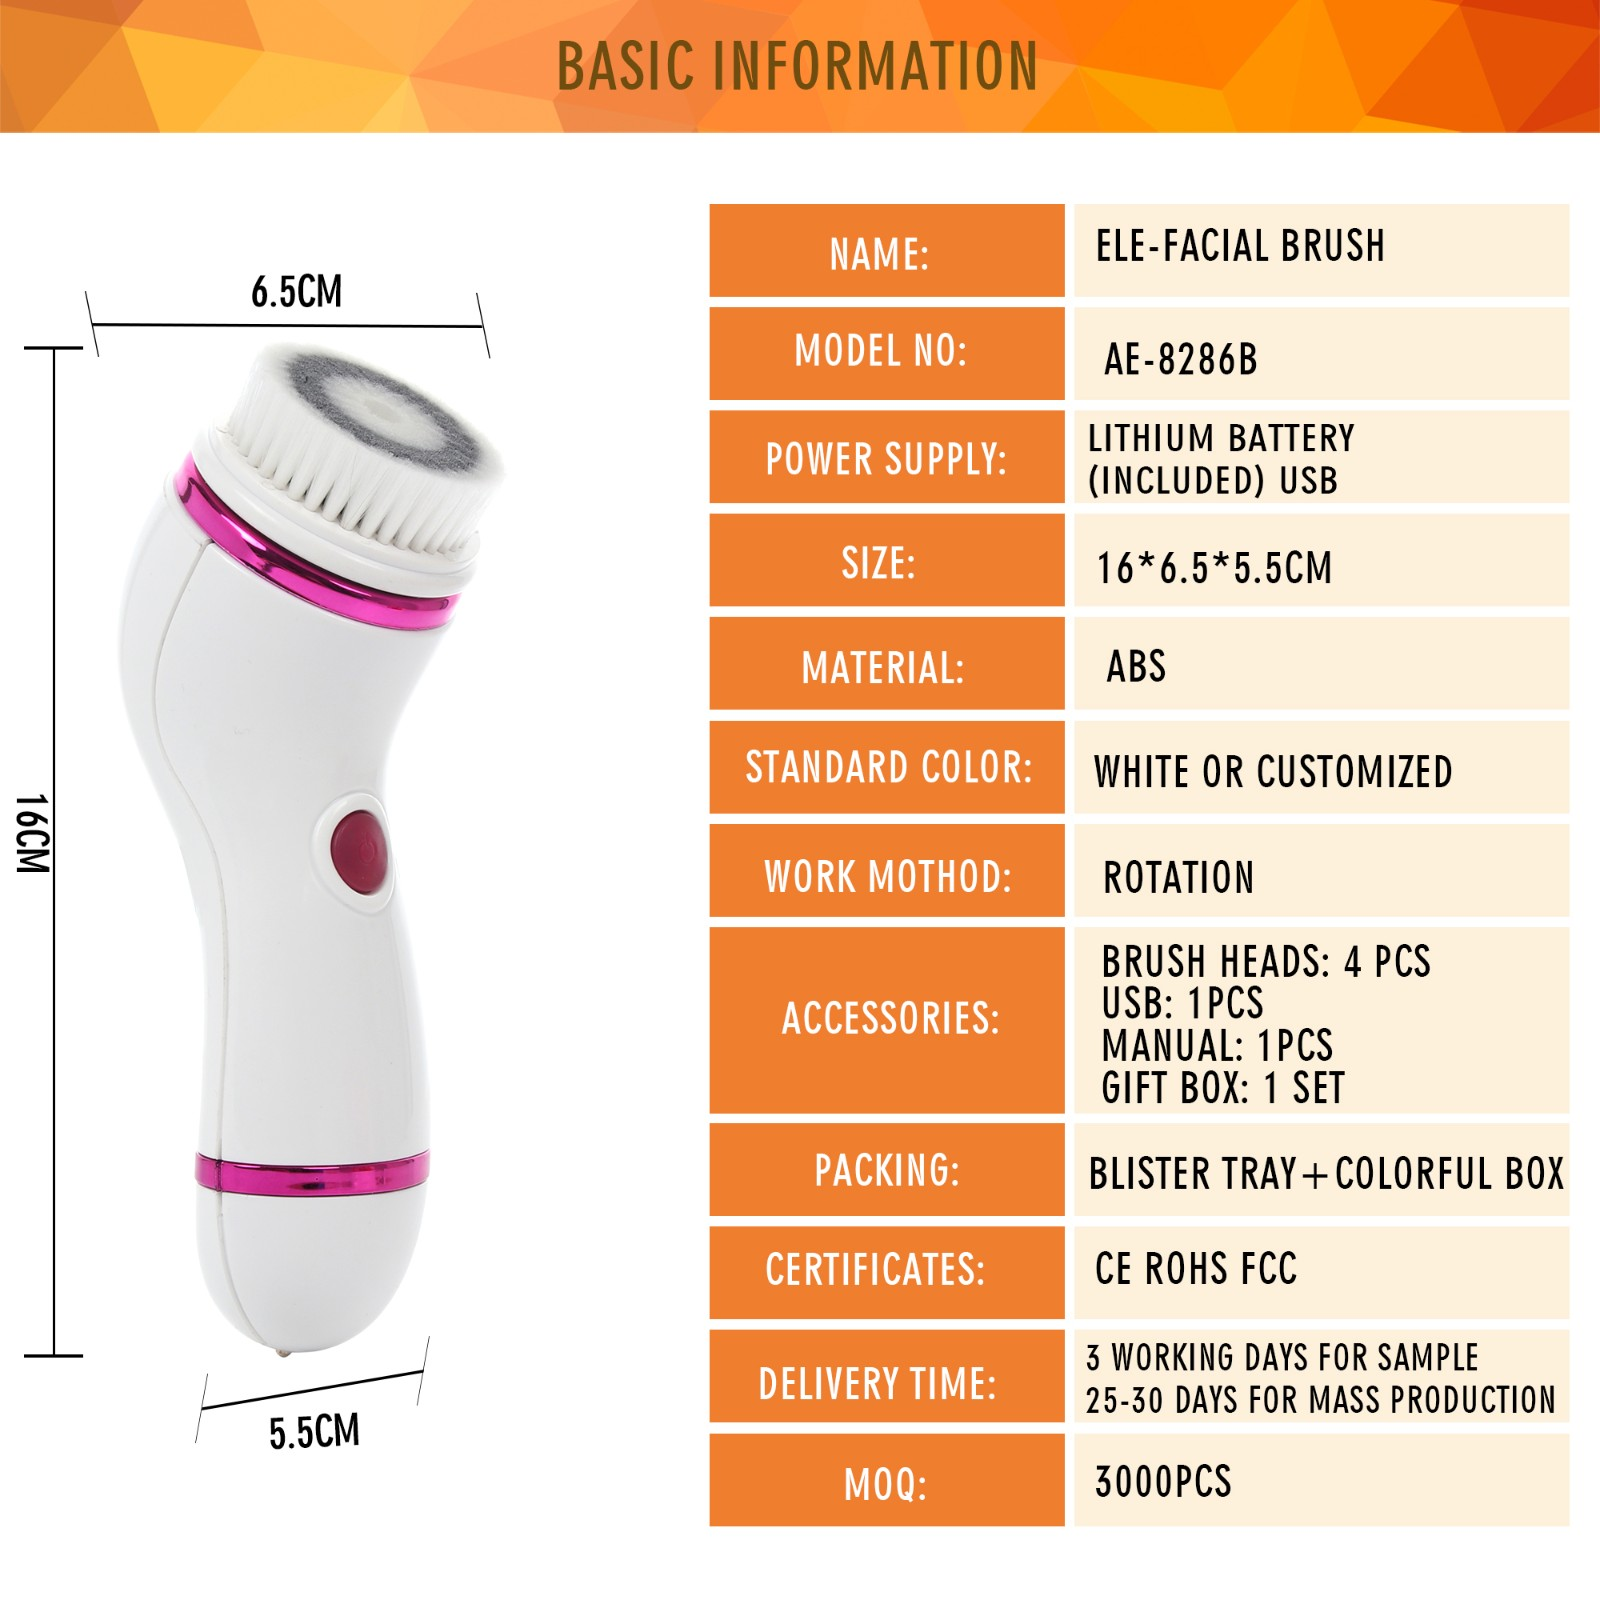 Amazon Hot sale 4-1 Facial Brush AE-8286B